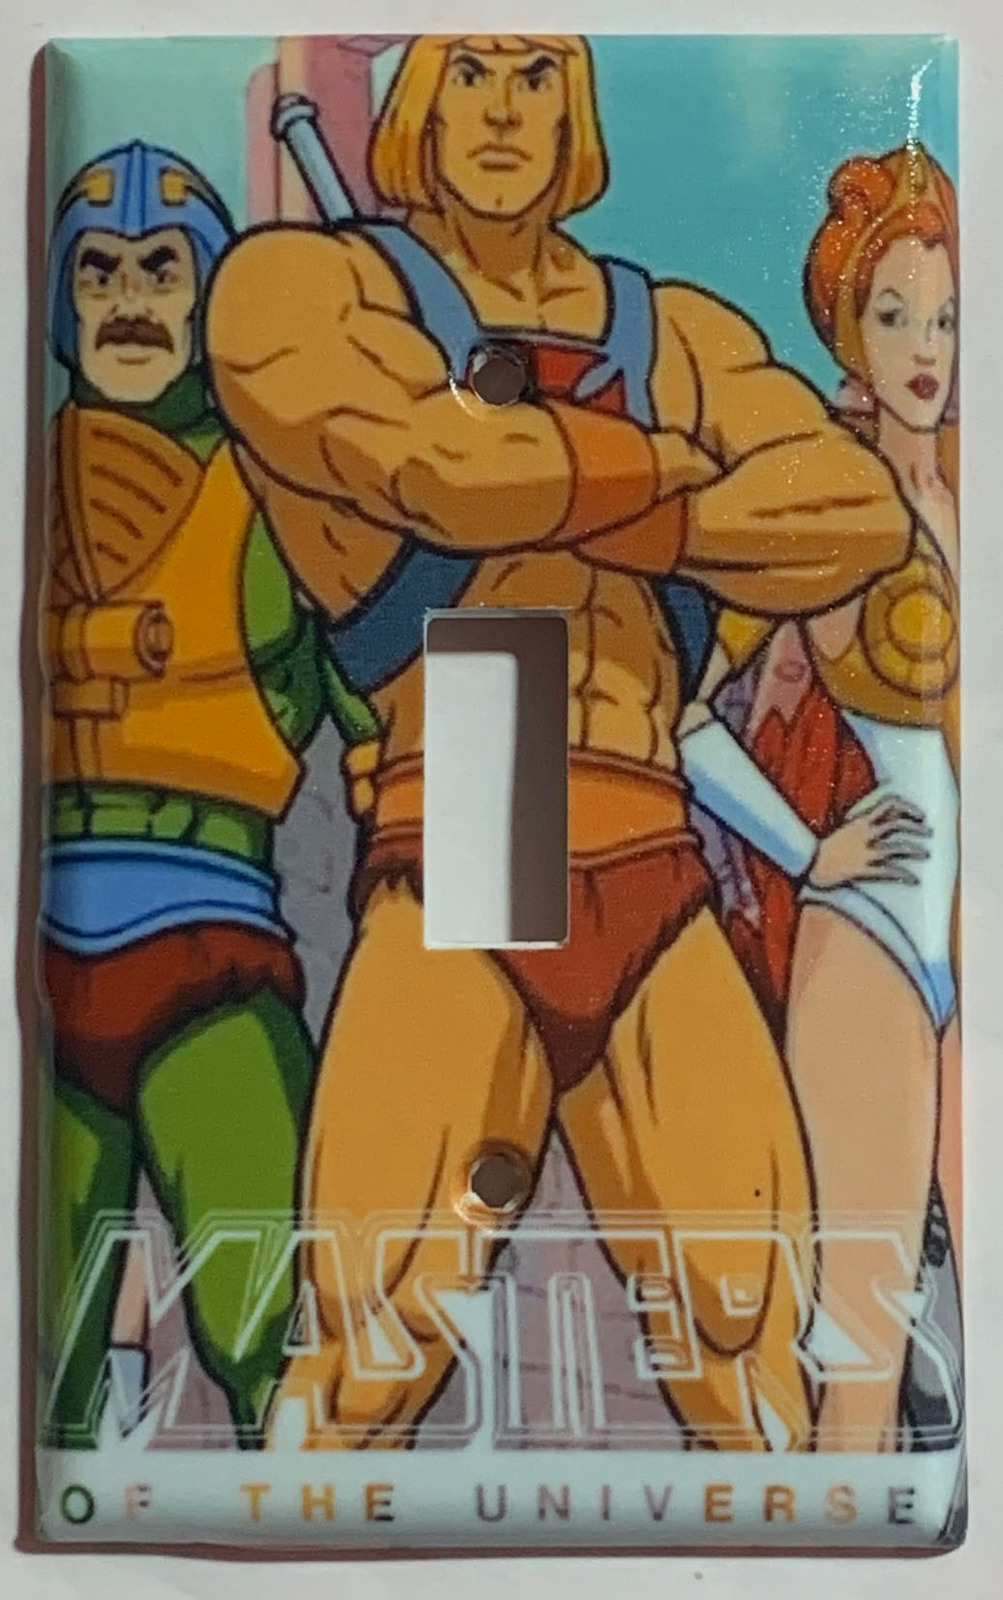 He man single toggle